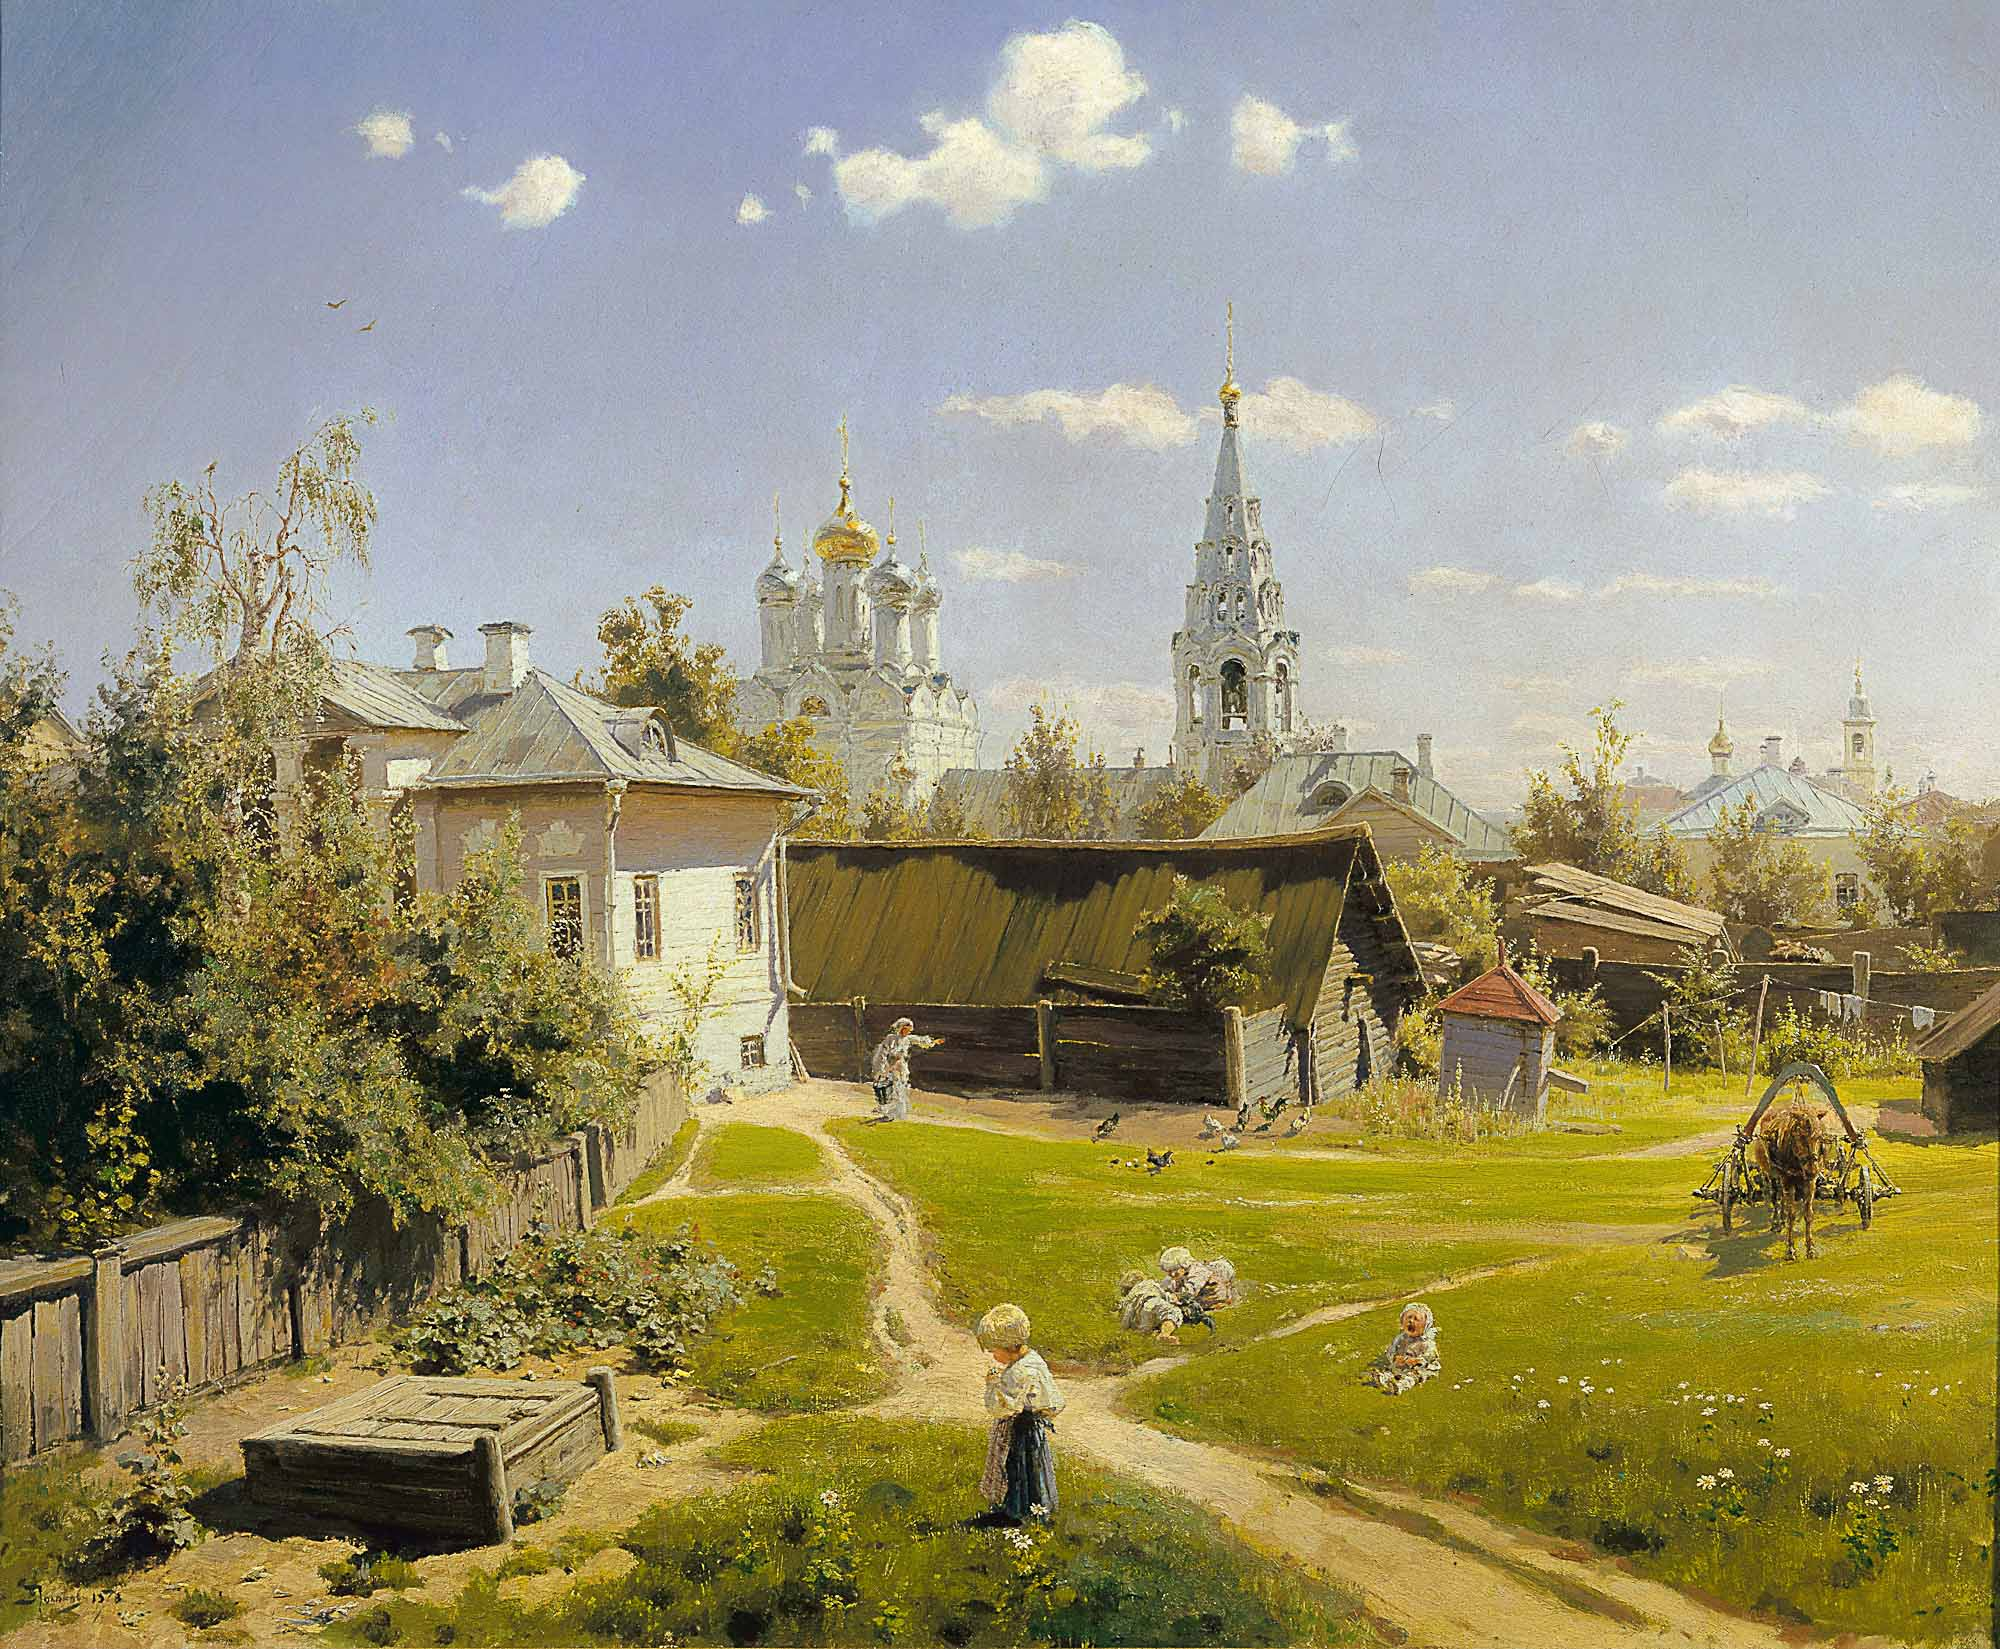 Vasily Polenov - Moscow courtyard, oil on canvas (1878)